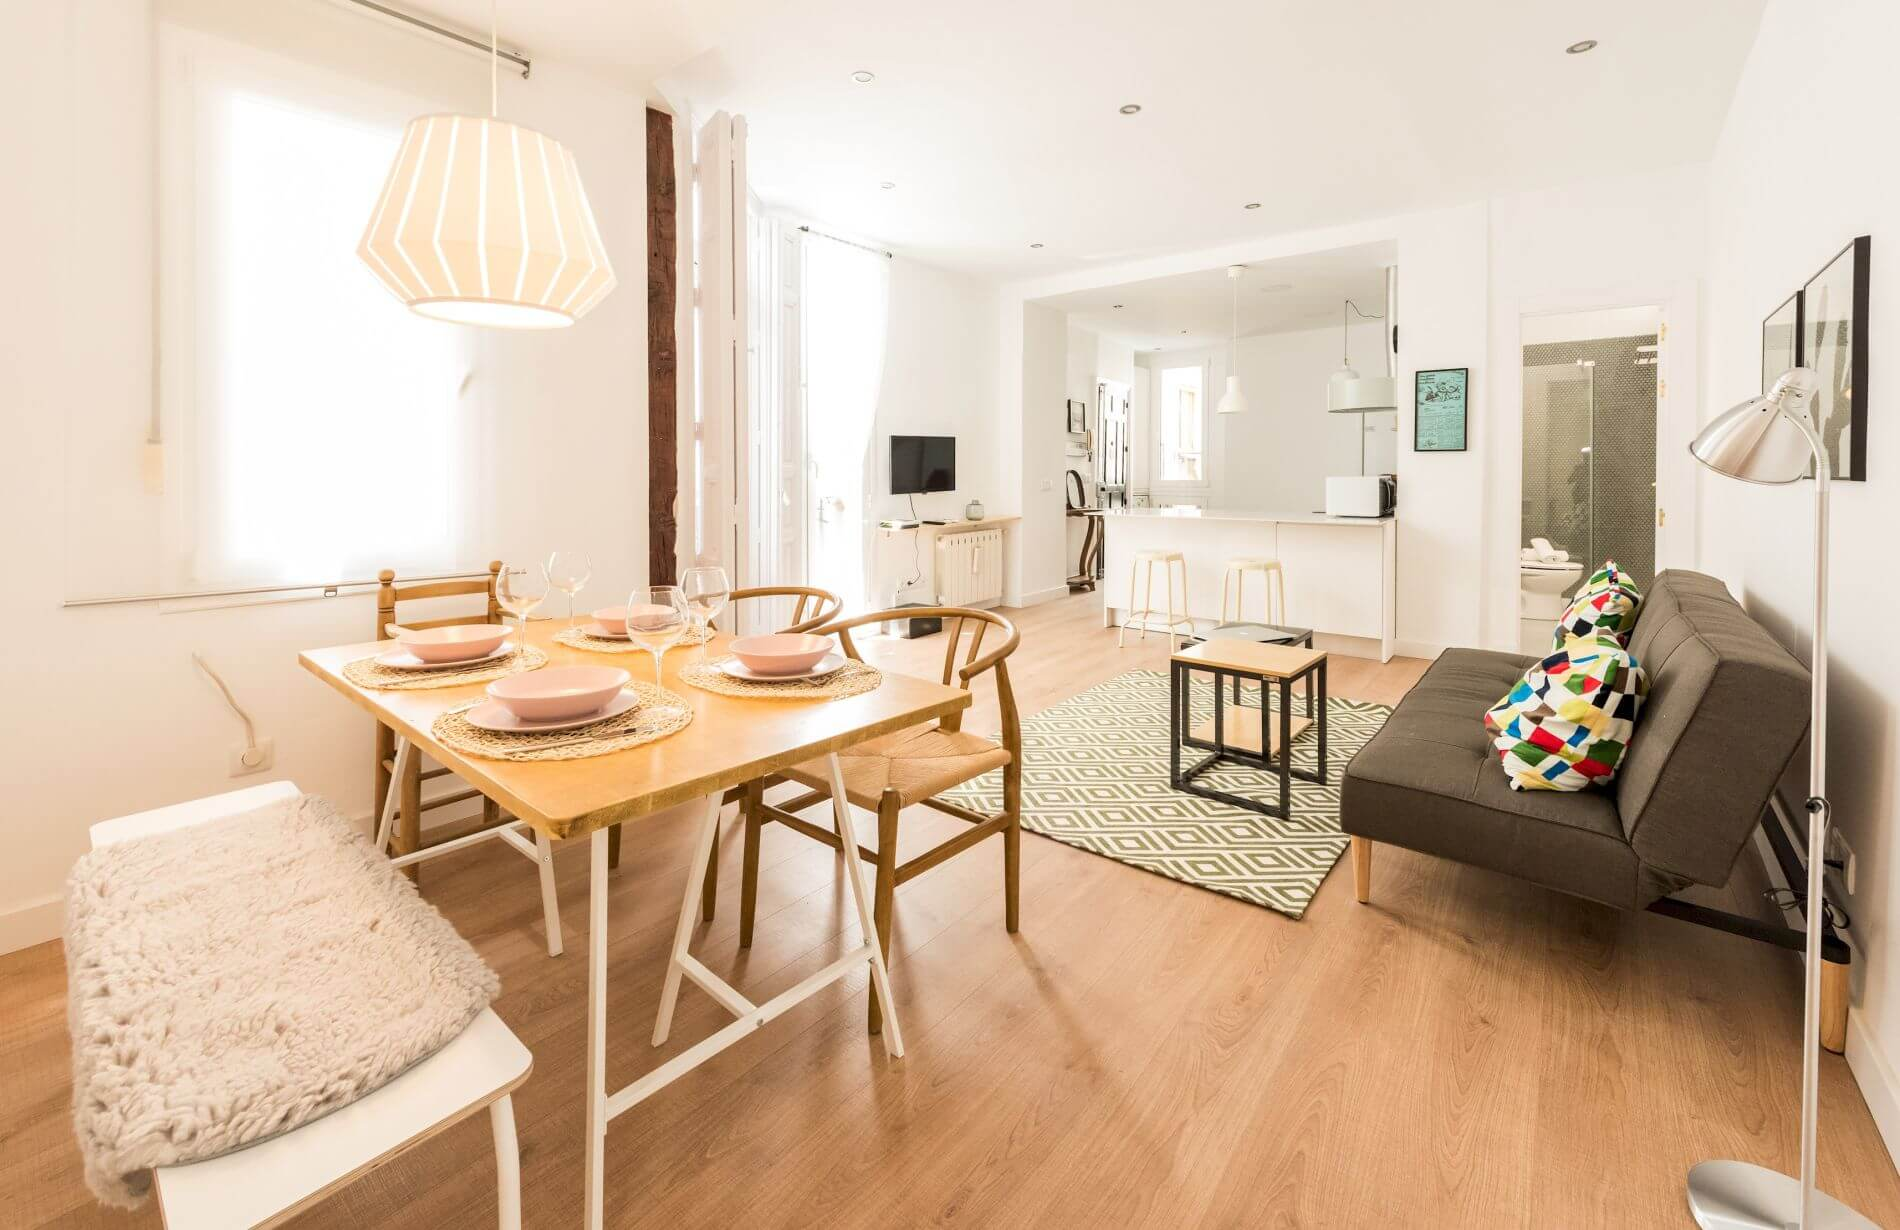 1 bed serviced apartment for short stays in Chueca, Madrid